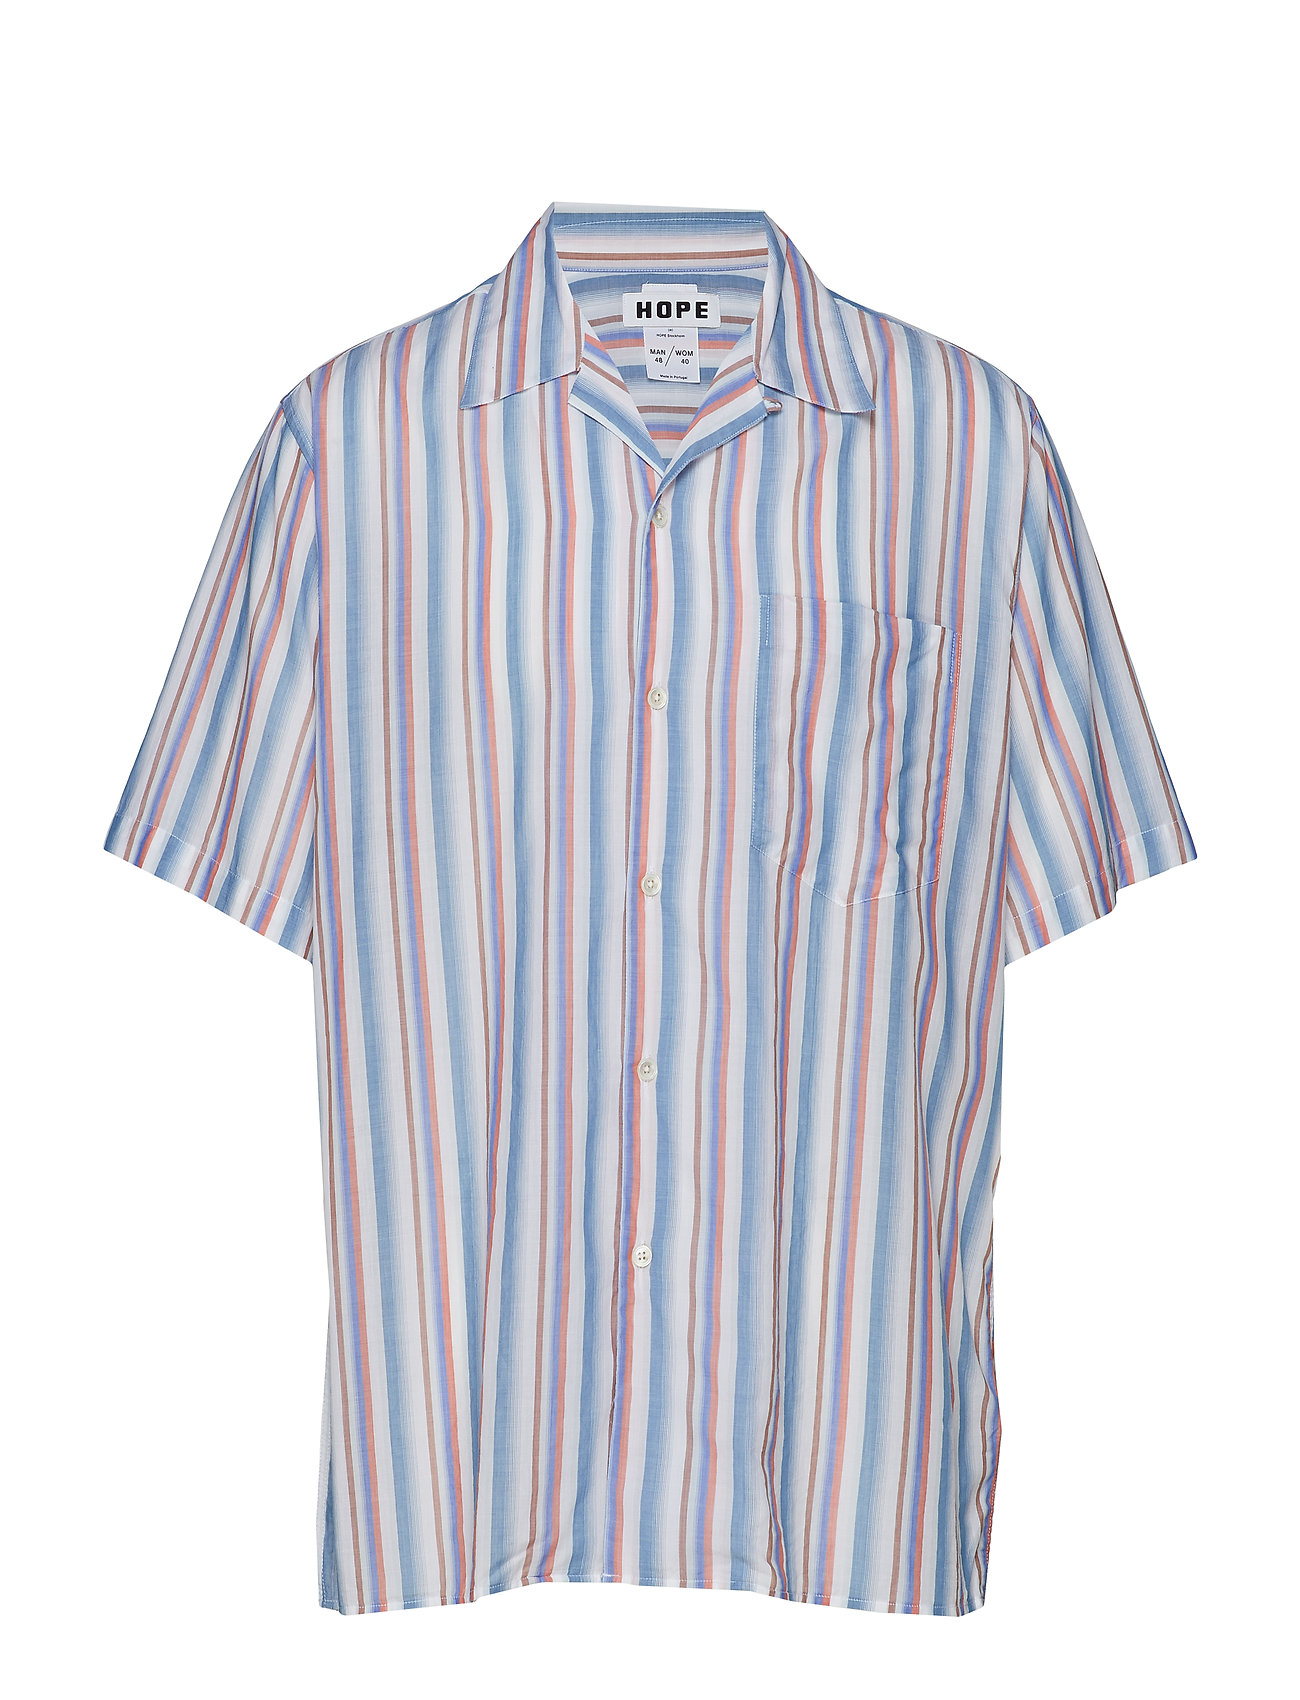 Hope Camp Shirt - MULTI STRIPE